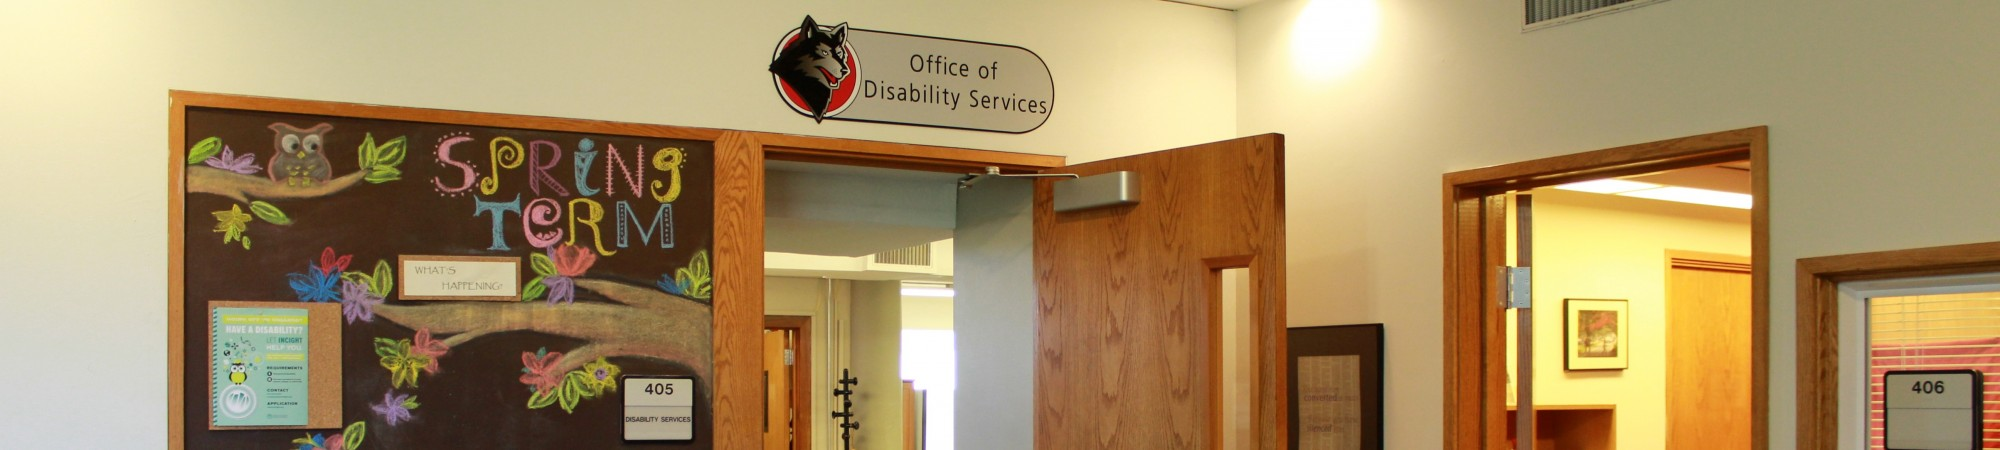 Disability Services Office